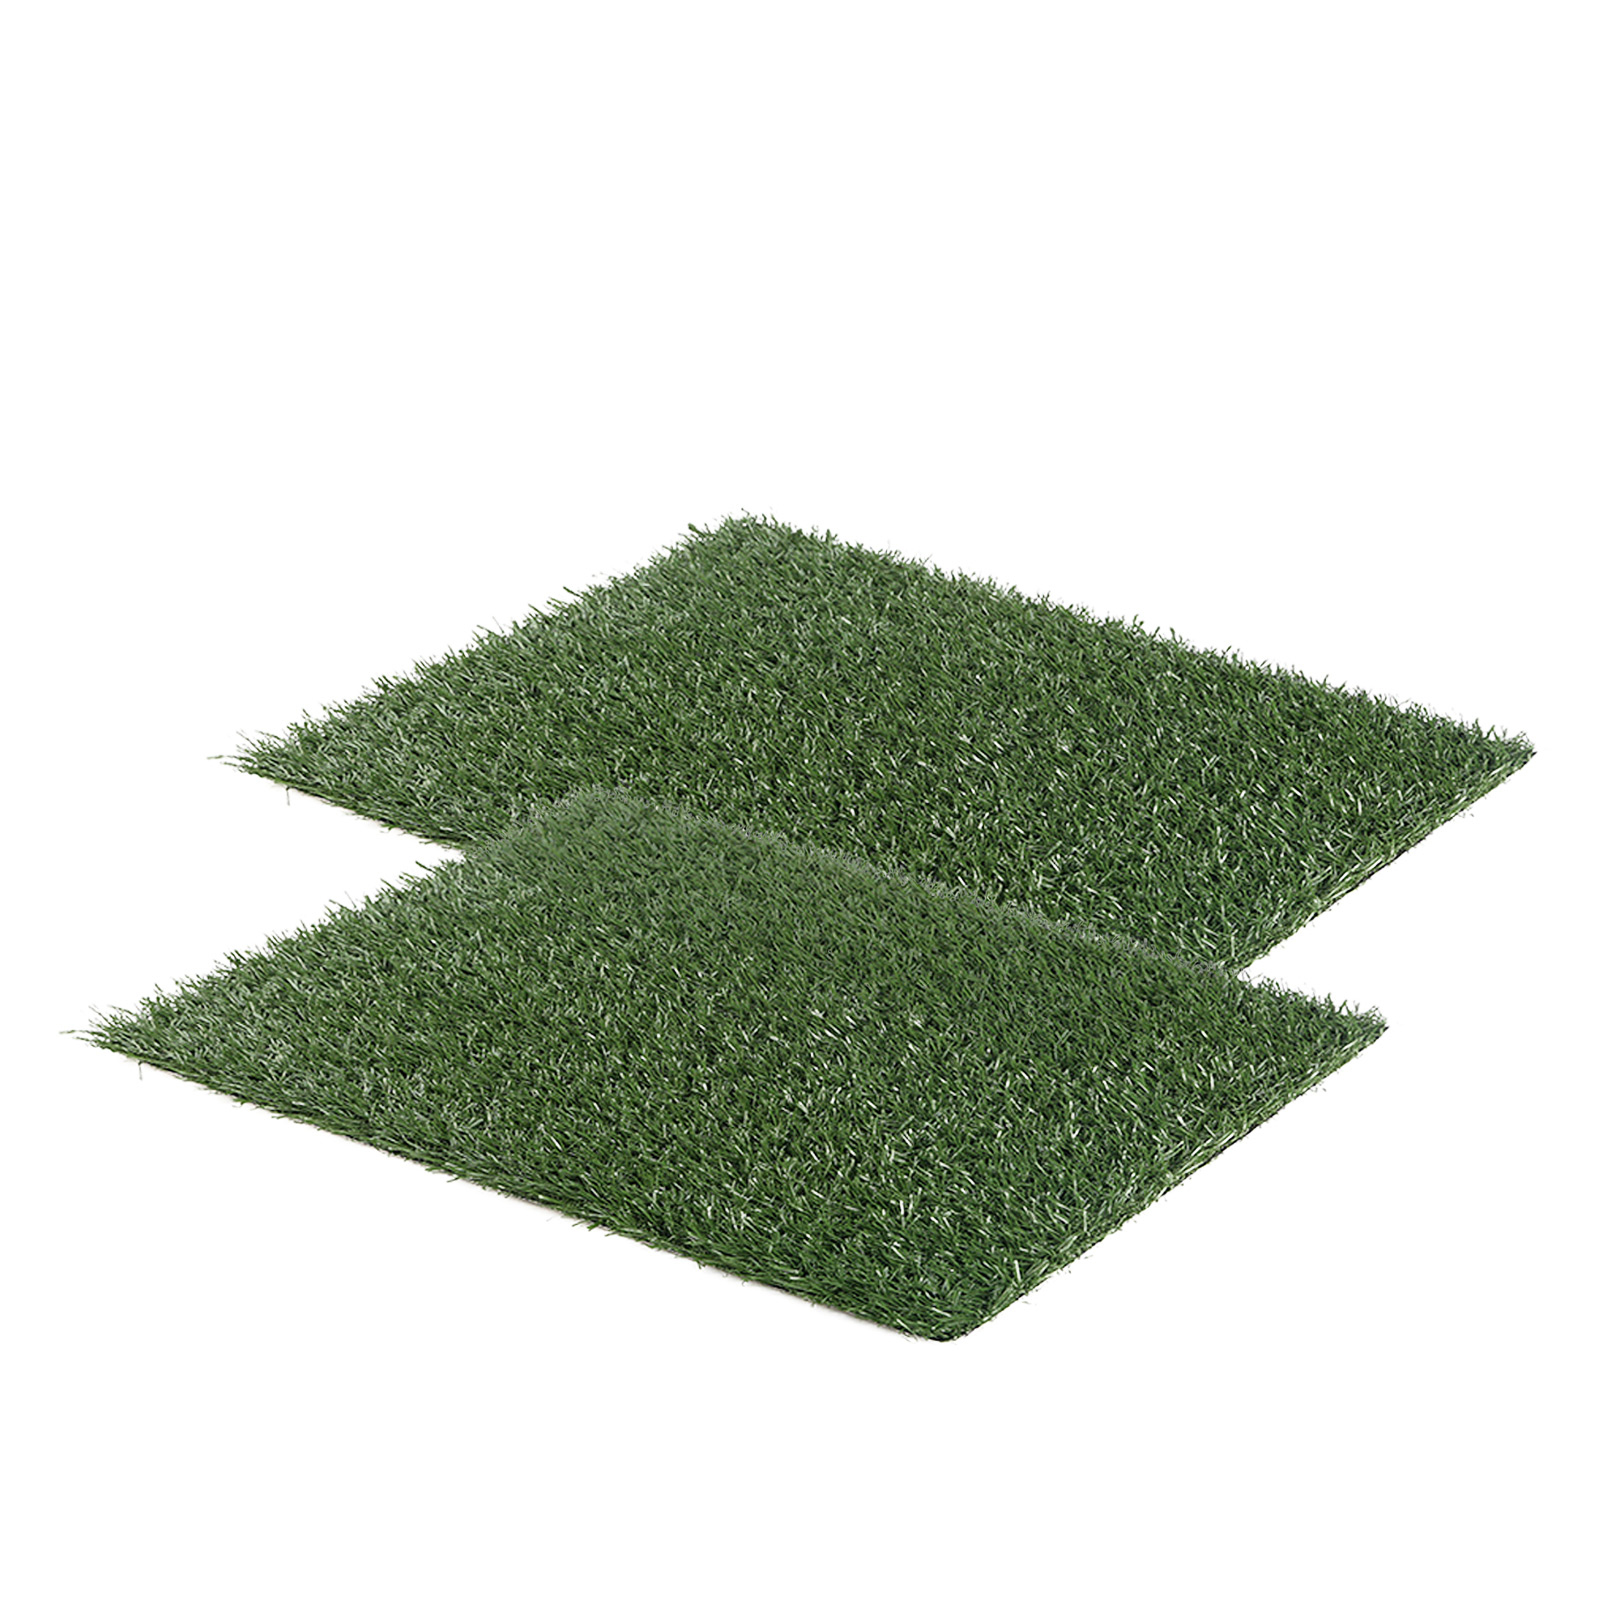 Pet Potty Training Pad Tray L 63 x 50cm - 2 Grass Mat Only